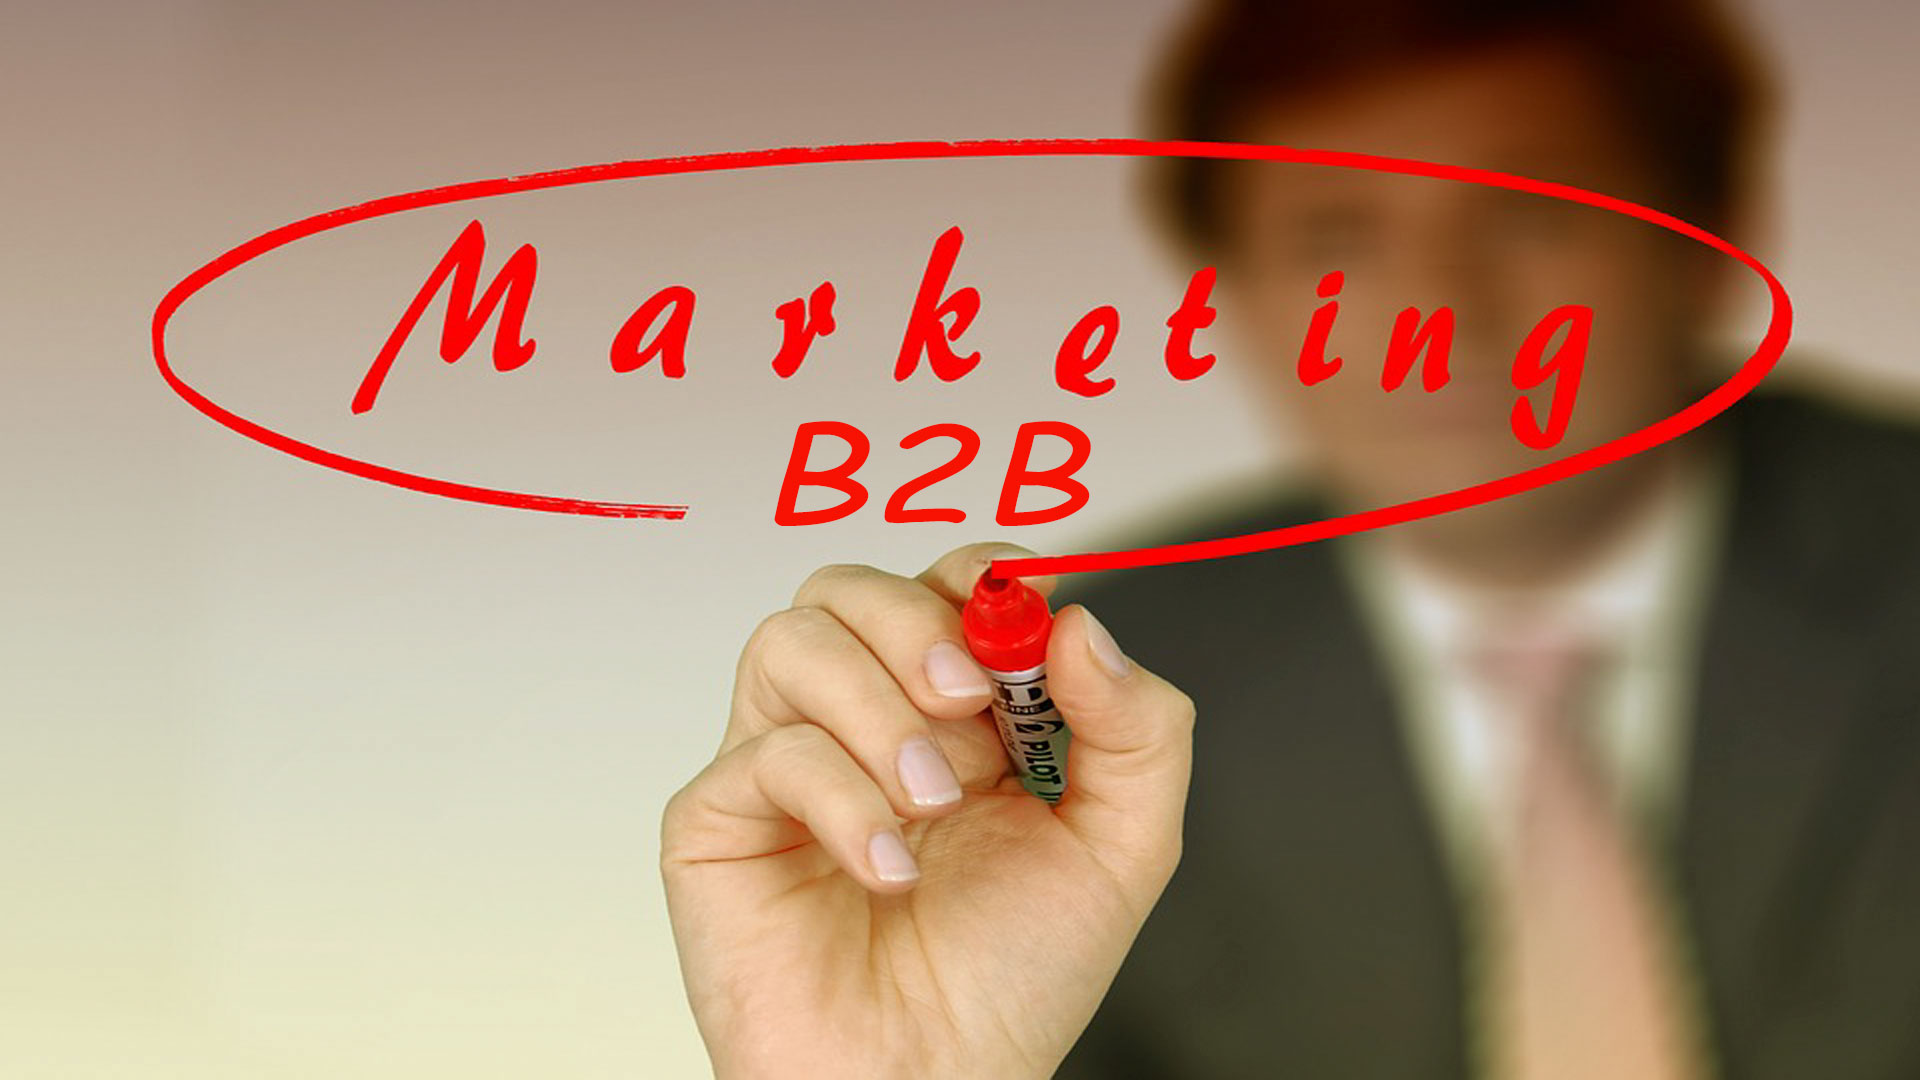 Como hacer Marketing B2B